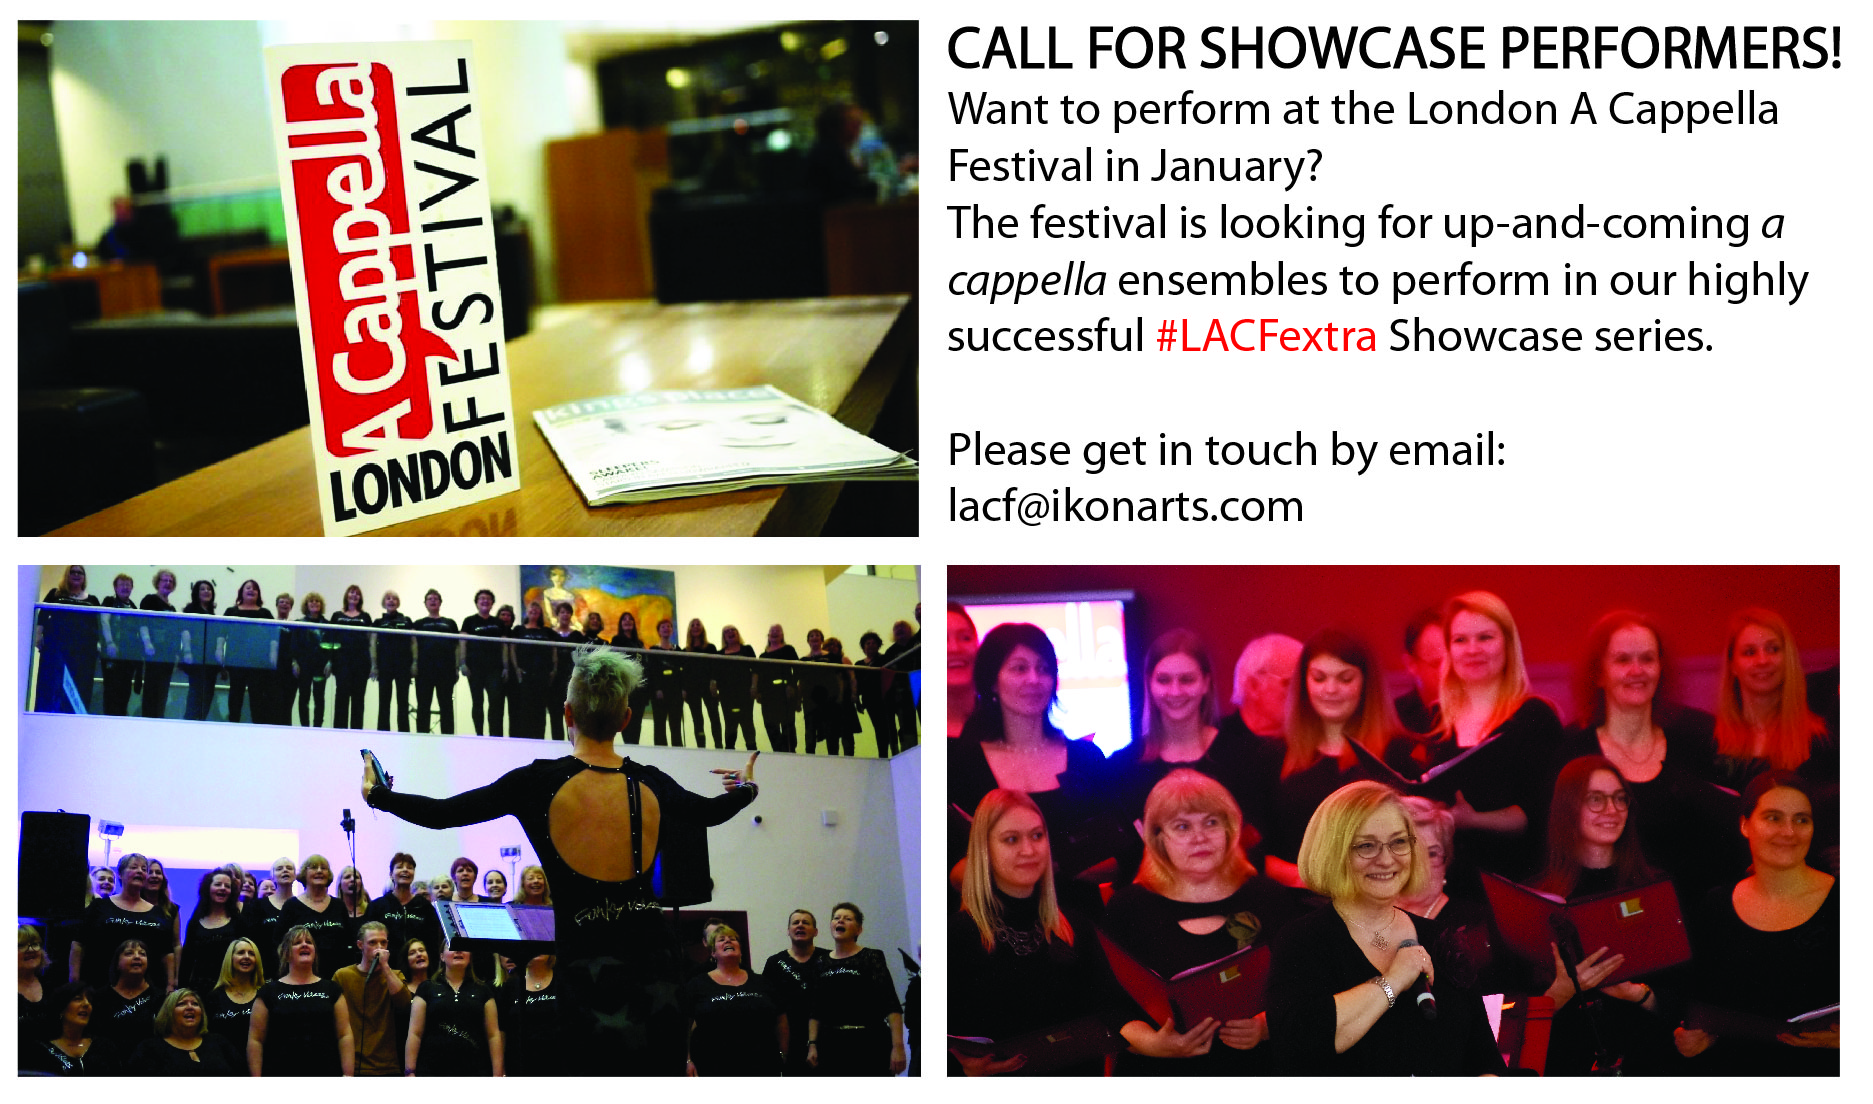 Call for showcase performers-01.jpg